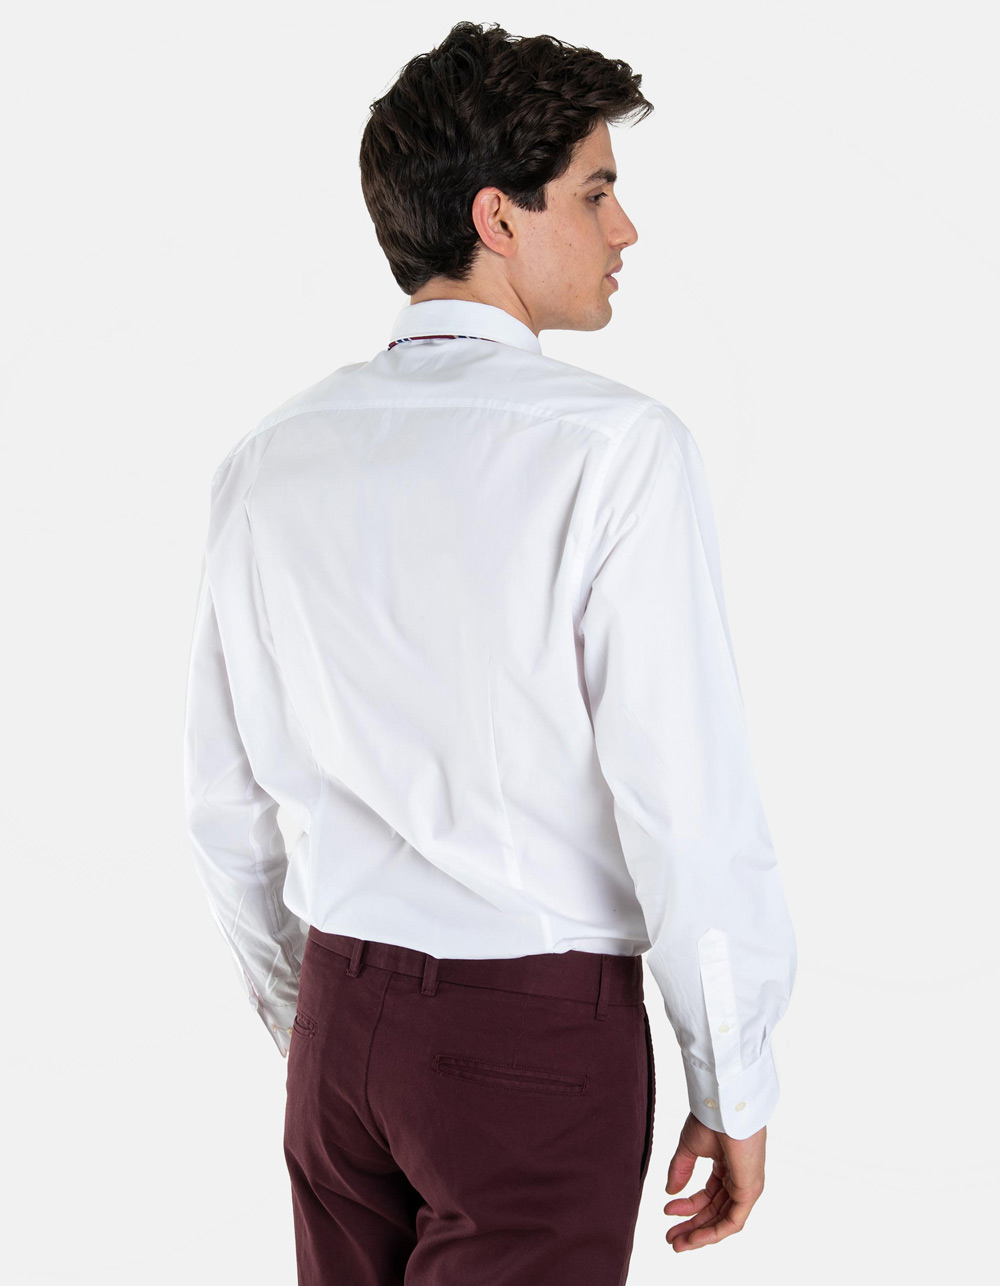 White plain dress shirt - Backside